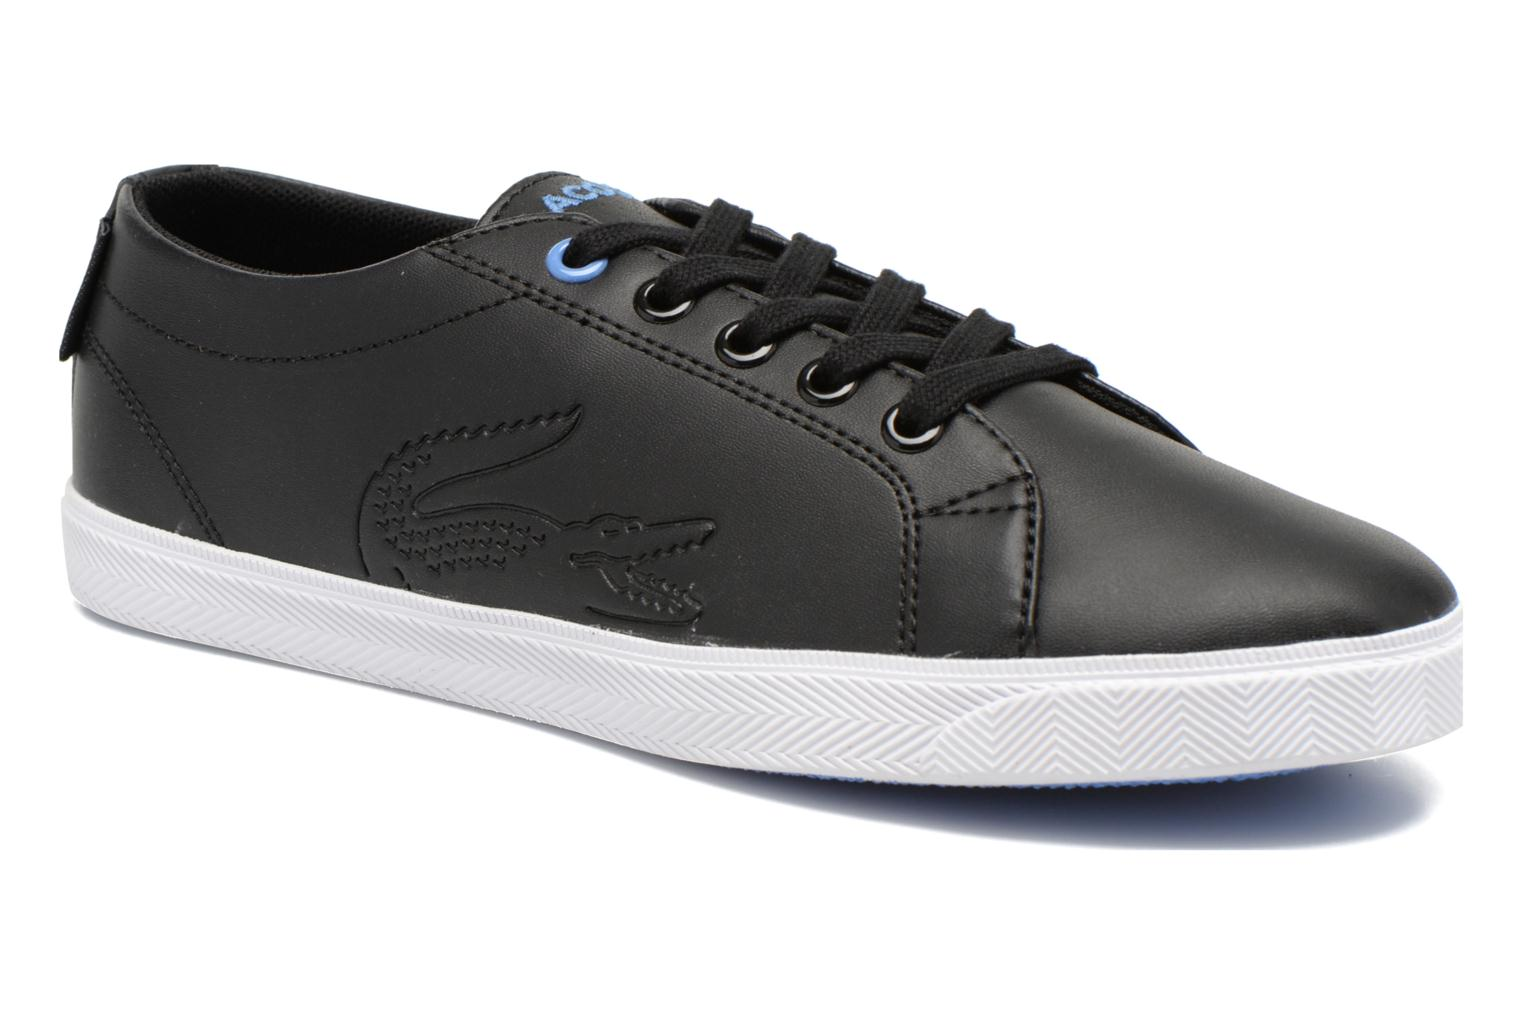 Marcel Lace Up 116 2 BLK/BLU